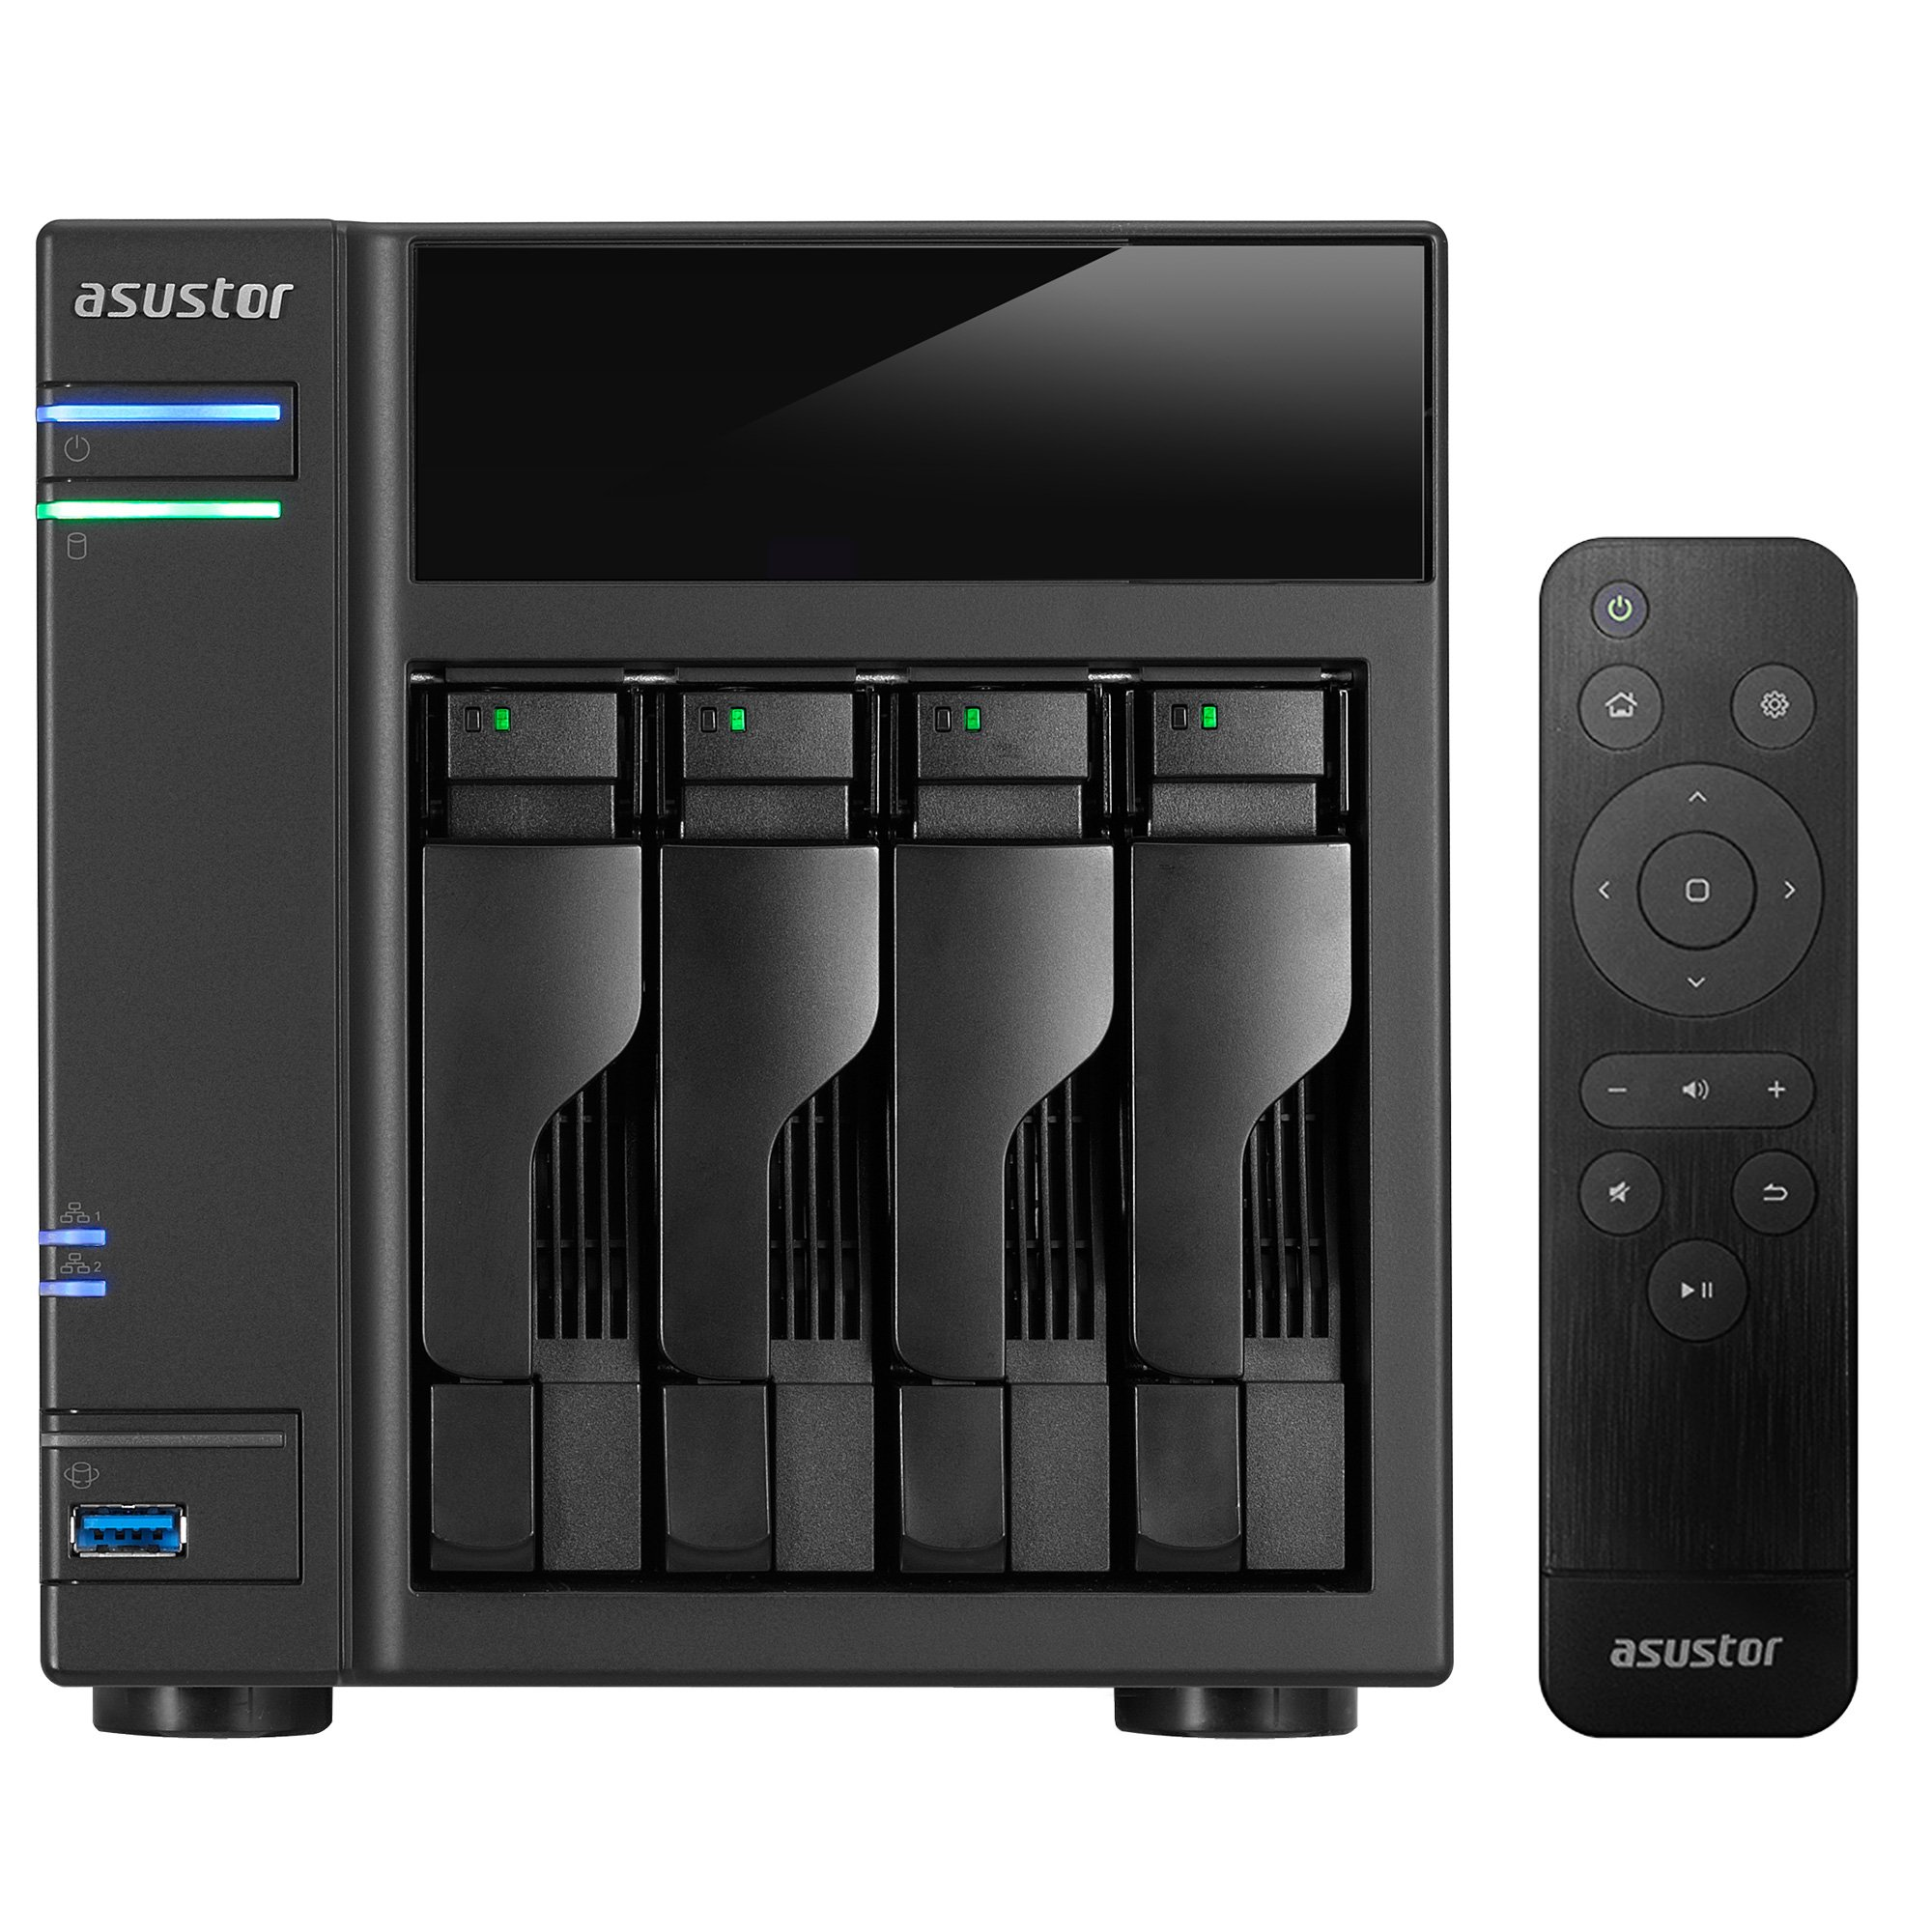 Asustor AS6104T + AS-RC13 Remote | 1.6GHz Dual-Core, 2GB RAM | Personal Private Cloud | Home Media Server | Network Attached Storage (4 Bay Diskless NAS)